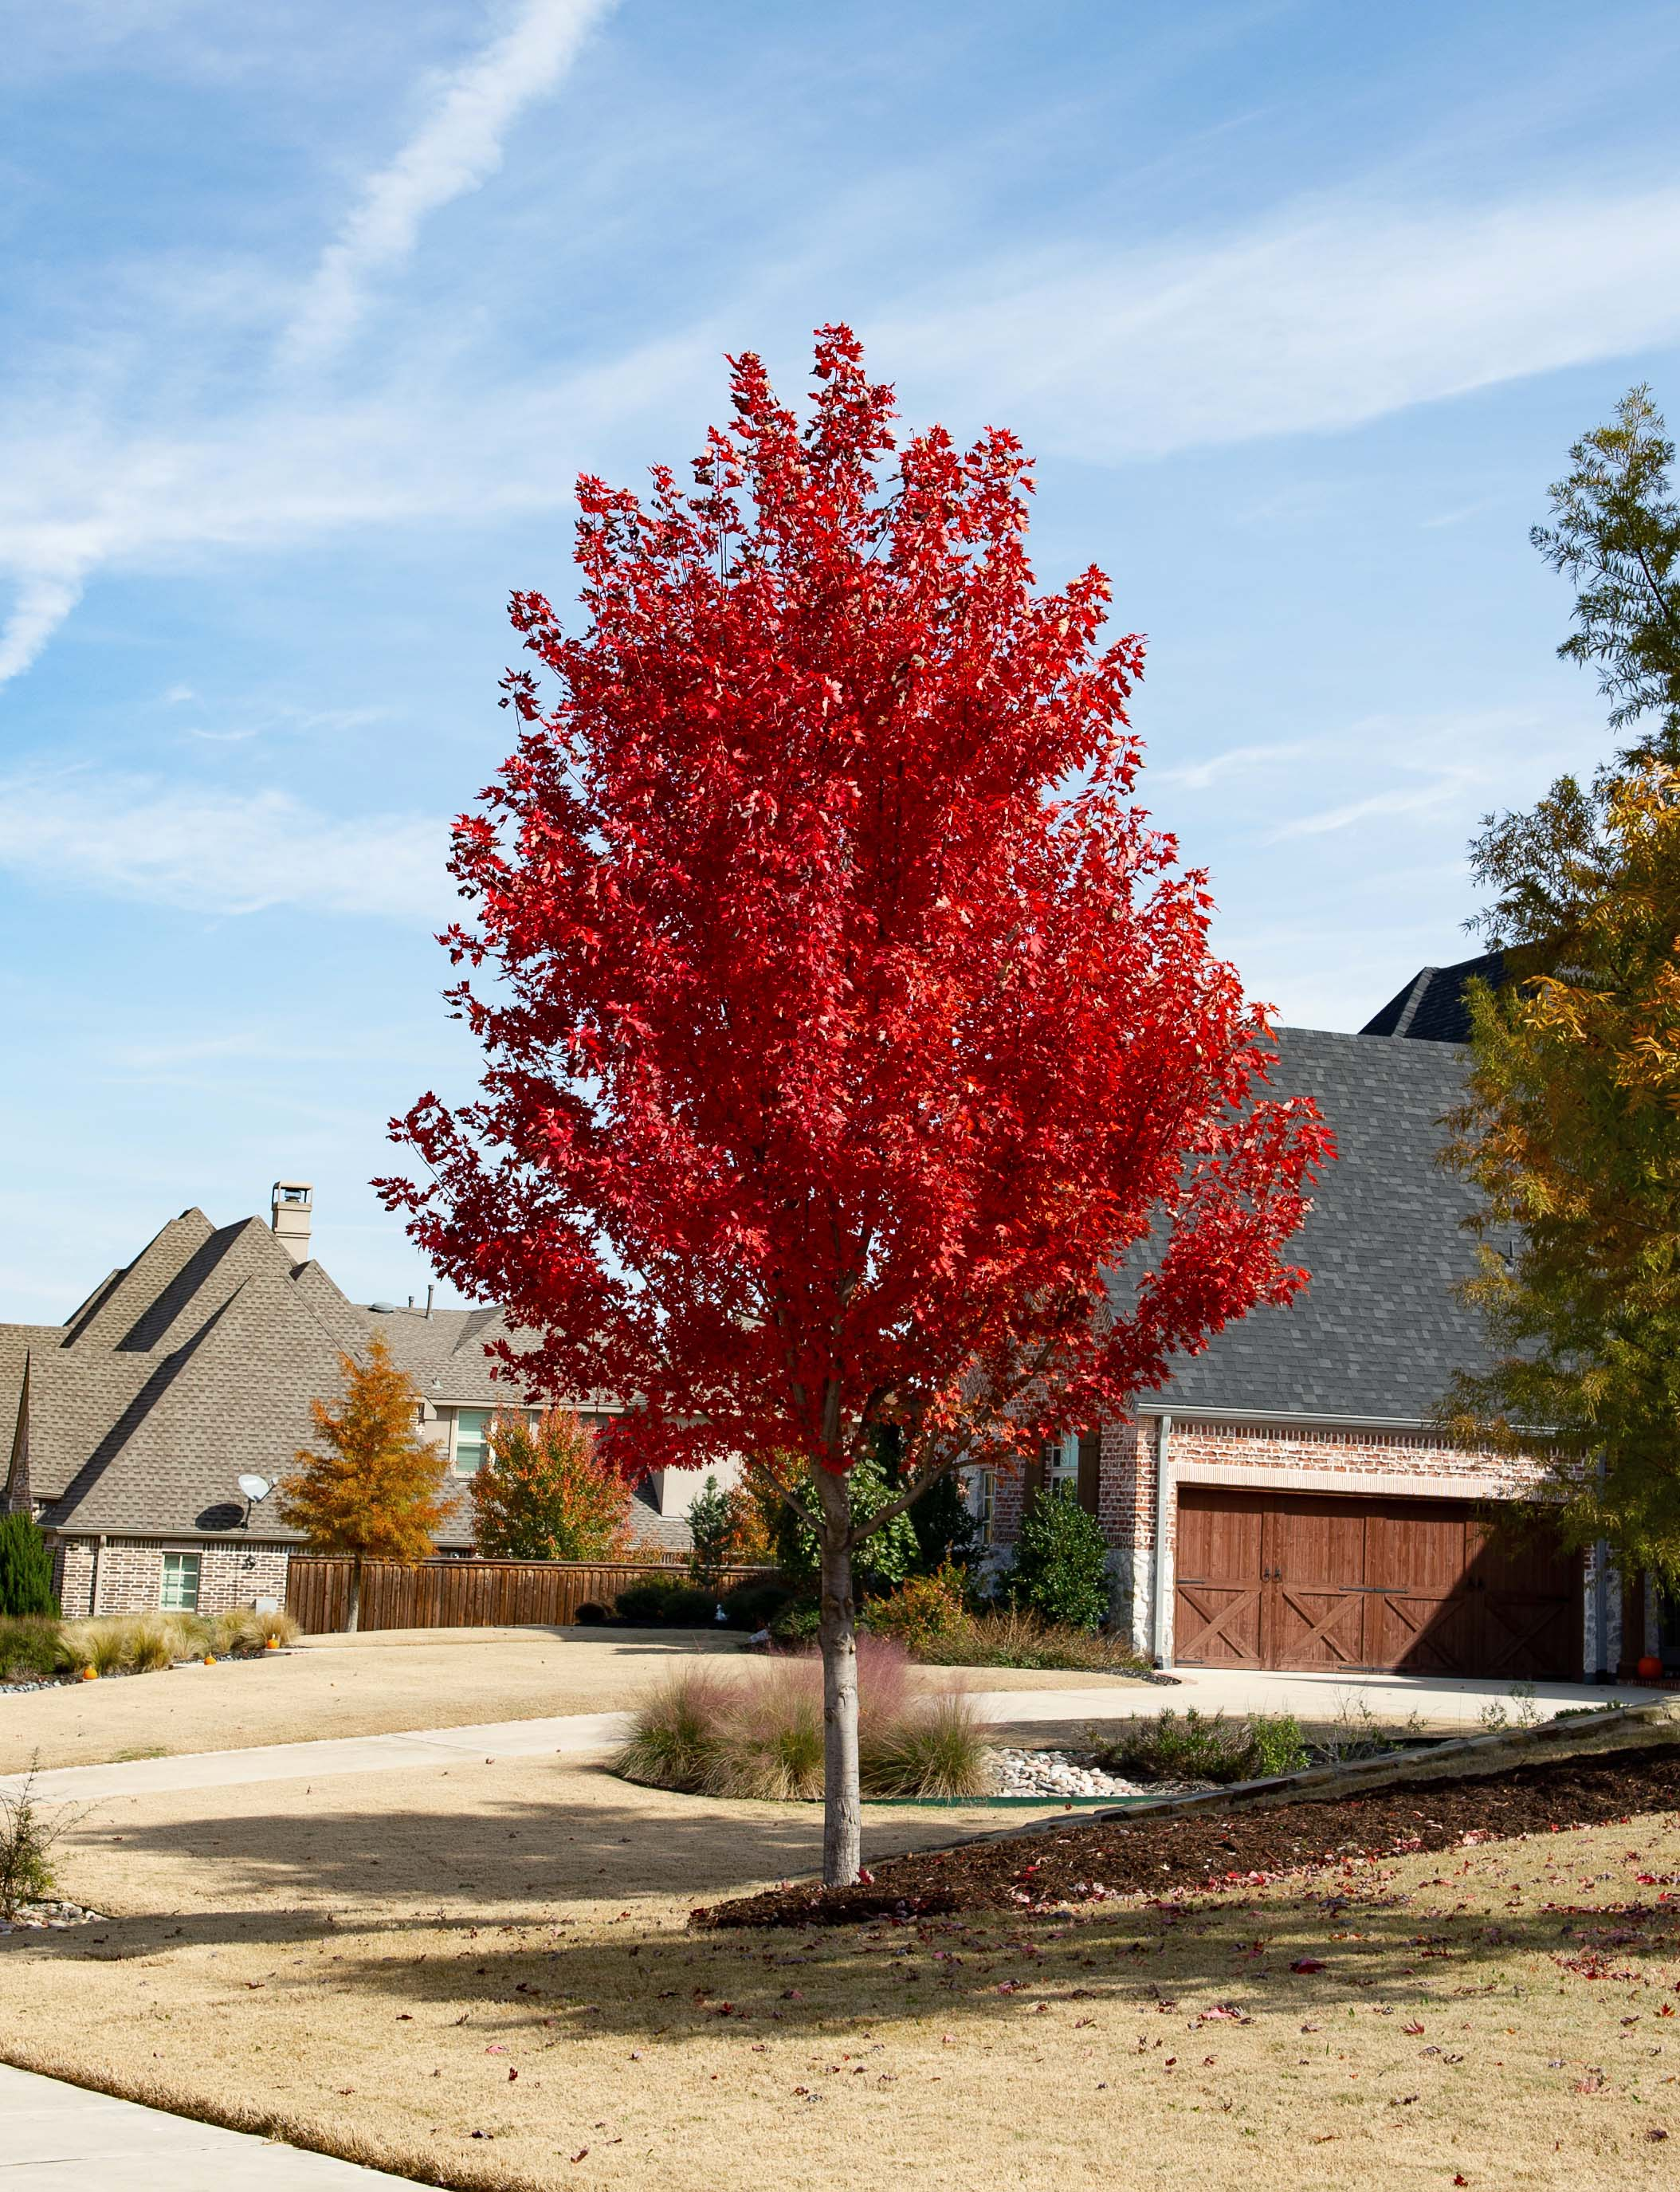 Mature October Glory Maple trees with Fall foliage.. Photographed by Treeland Nursery in Prosper, TX.